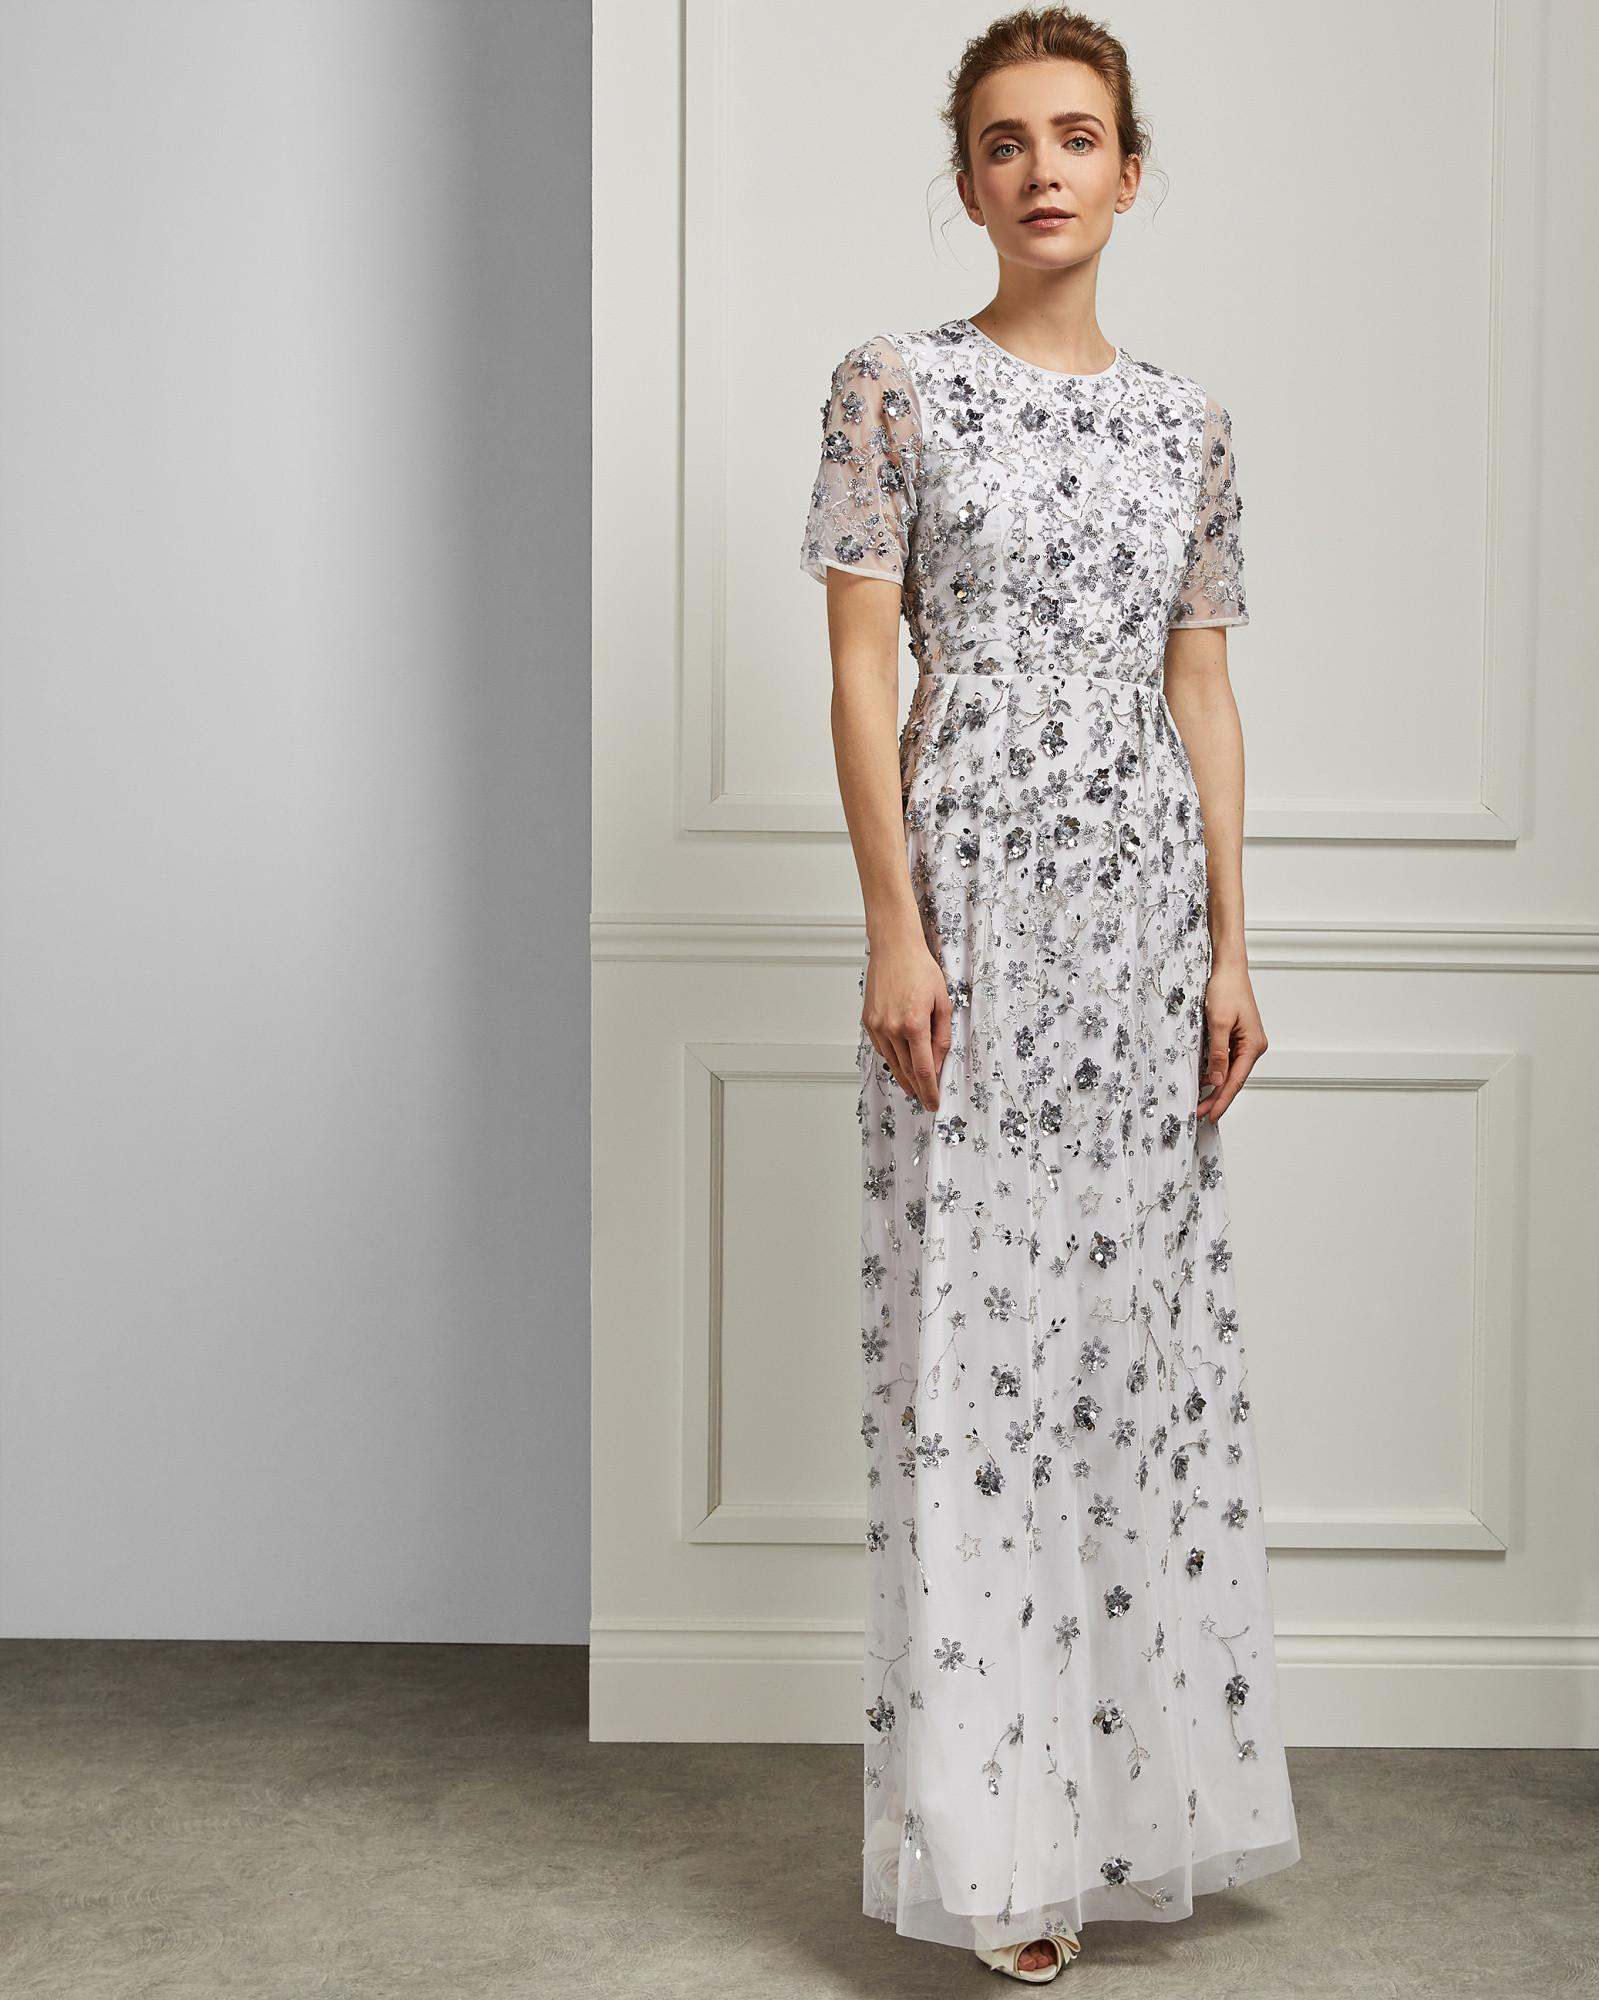 2c03dcd83 Ted Baker All-over Embellished Maxi Dress in White - Lyst